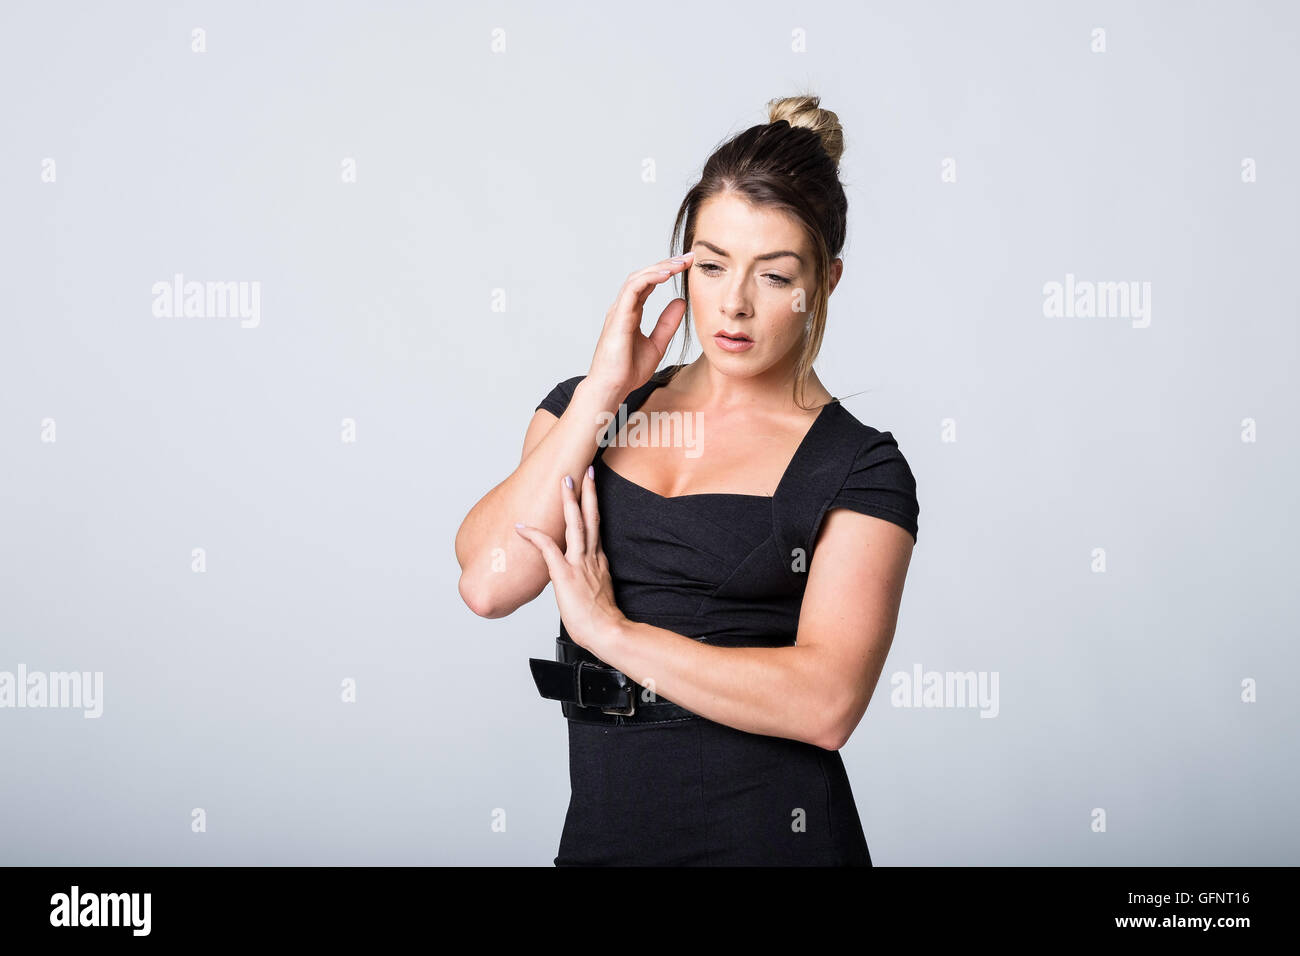 WOman in black dress looking unwell or feeling down - Stock Image